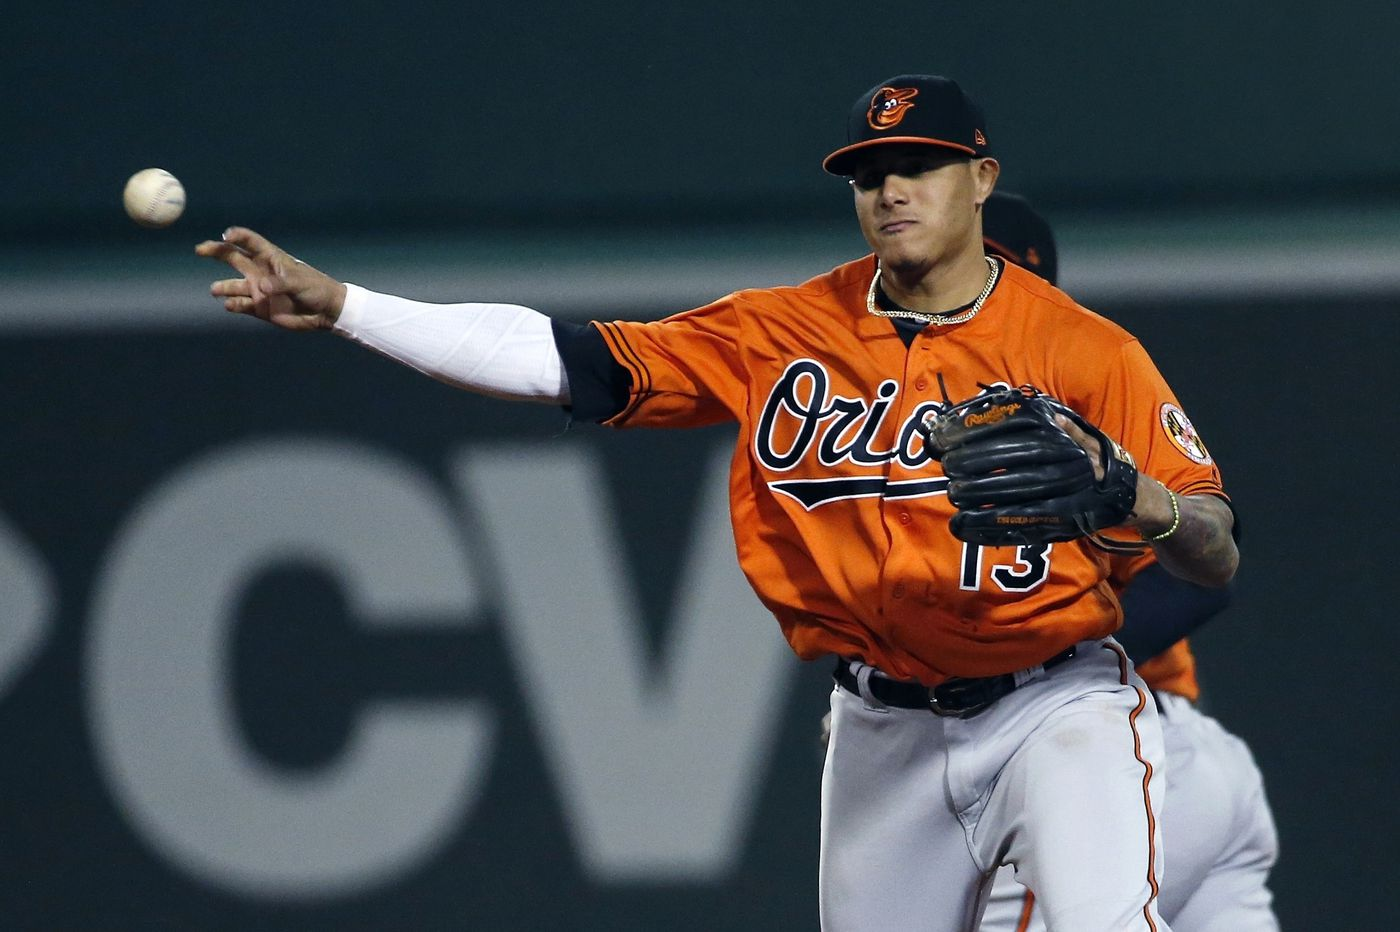 Manny Machado will be a Dodger for now, but Phillies can still make a pitch in free agency